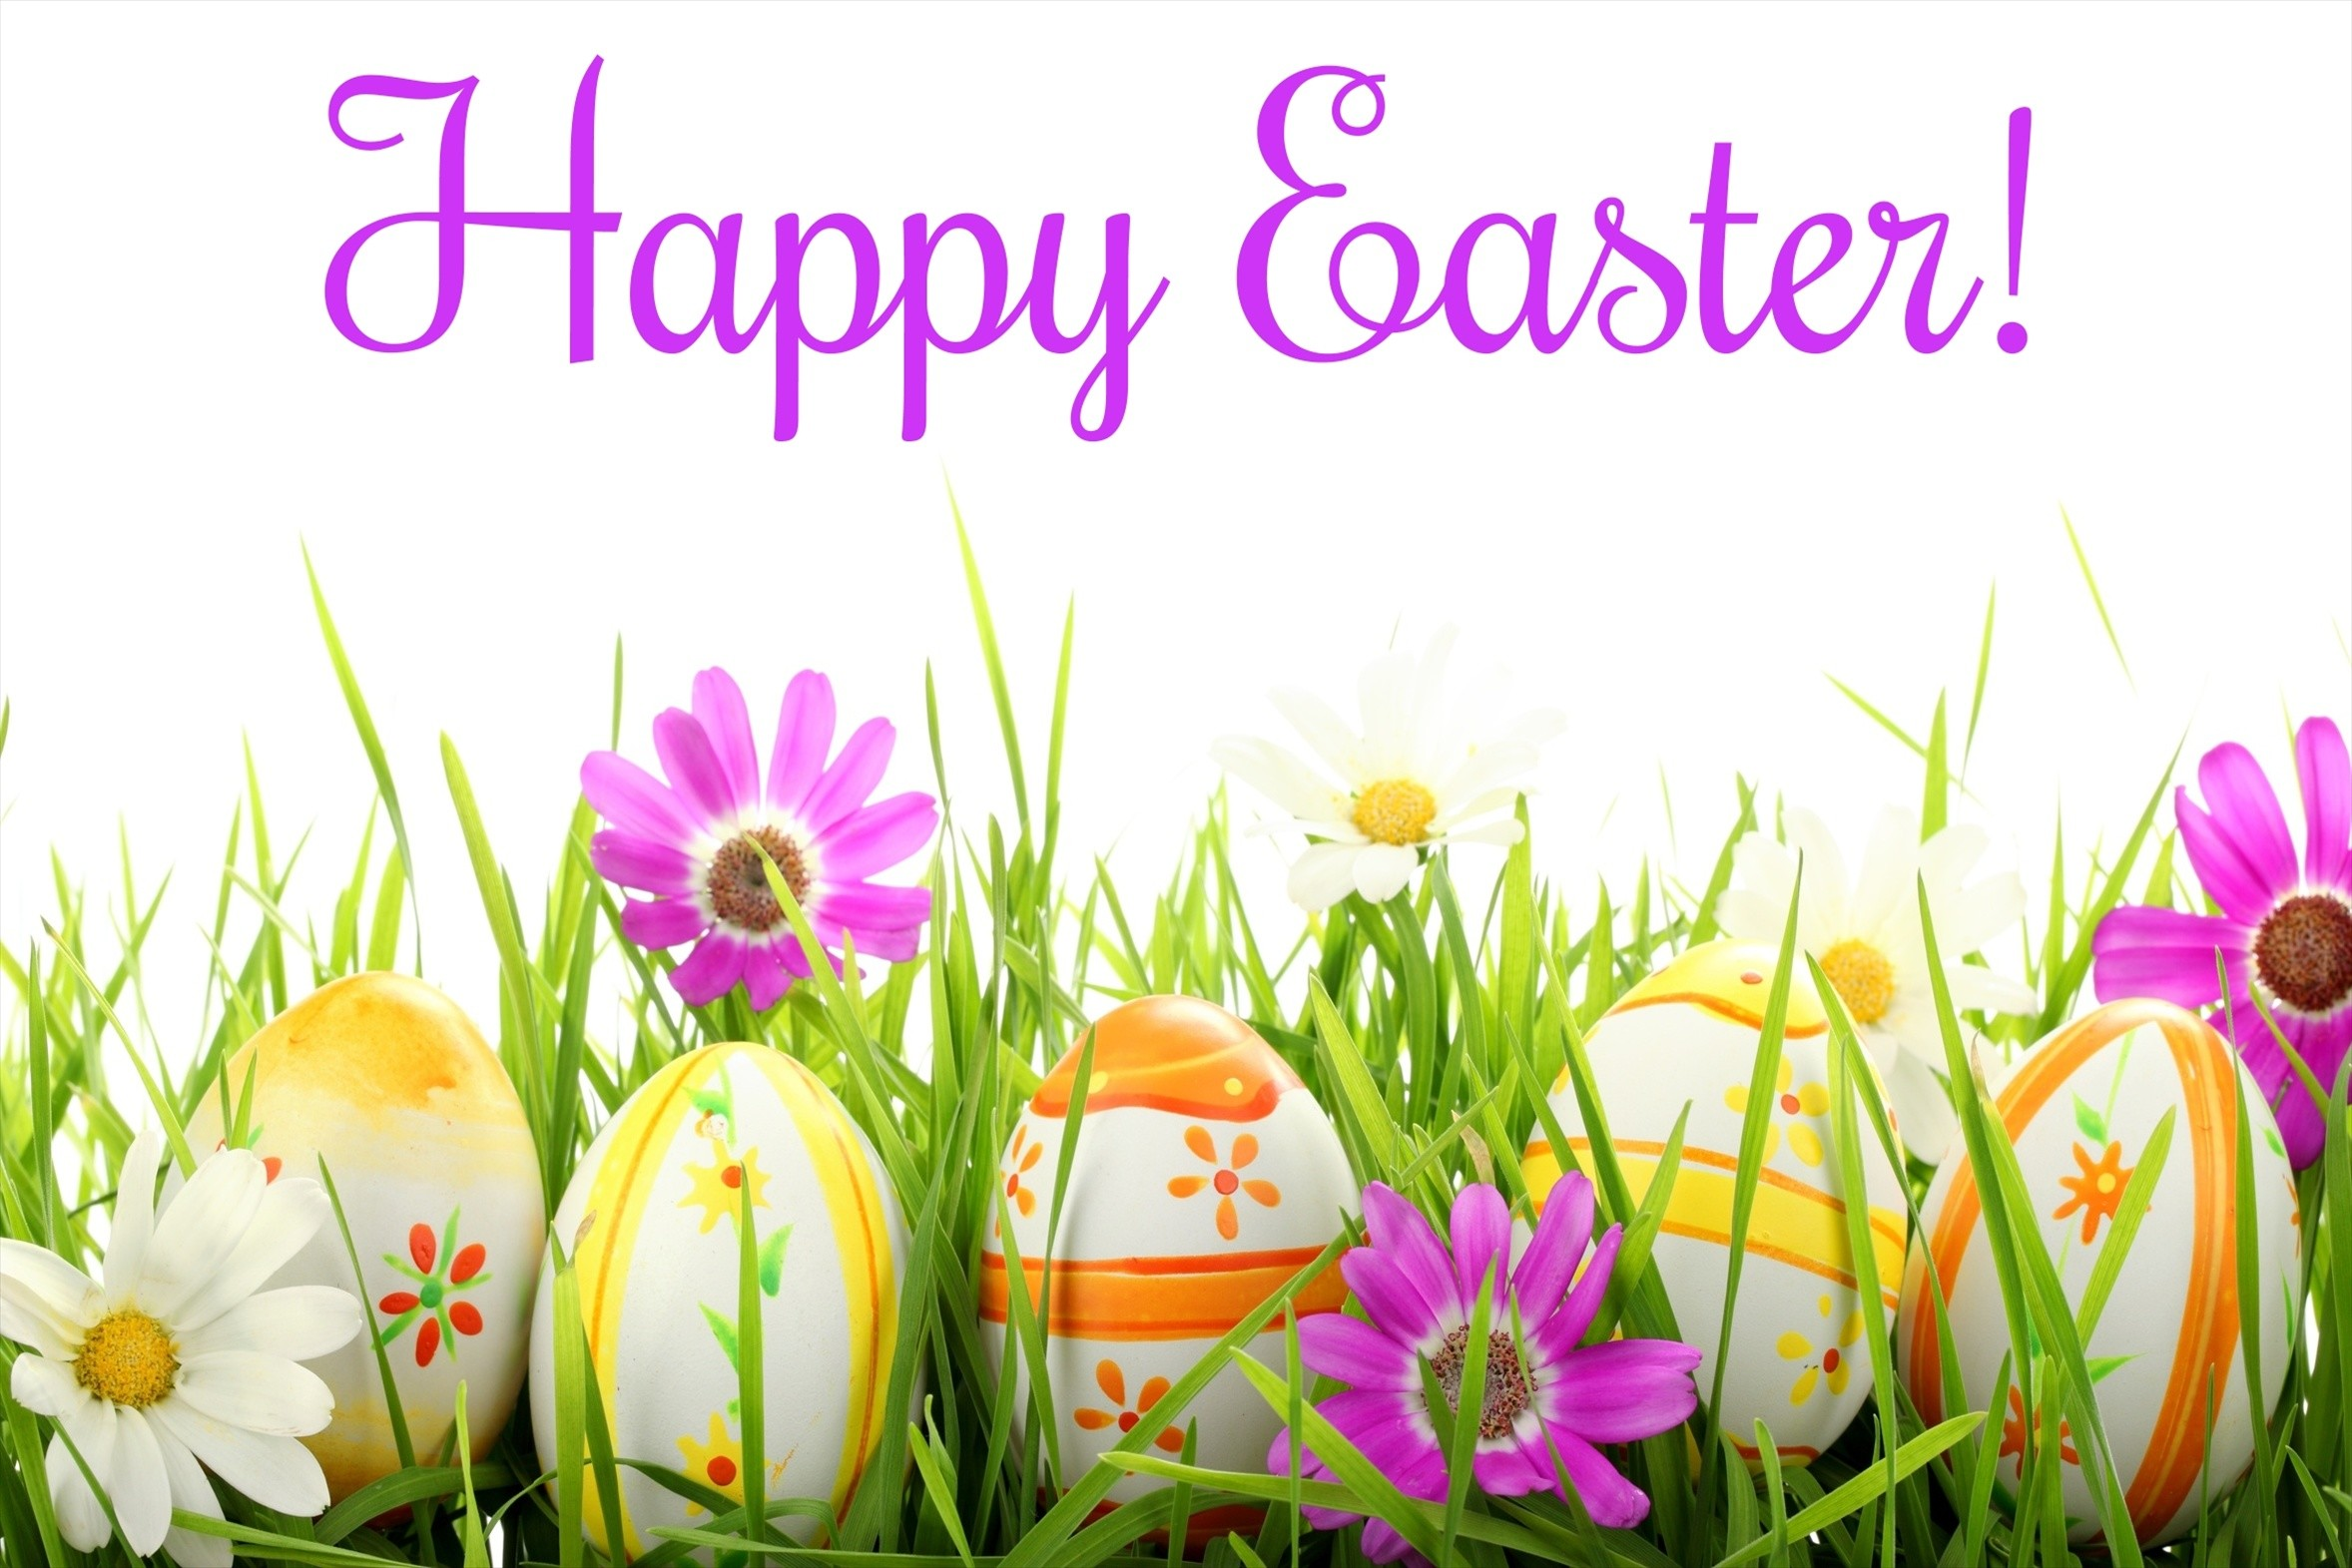 2356x1571 Happy Easter!! - Realty RoundupRealty Roundup